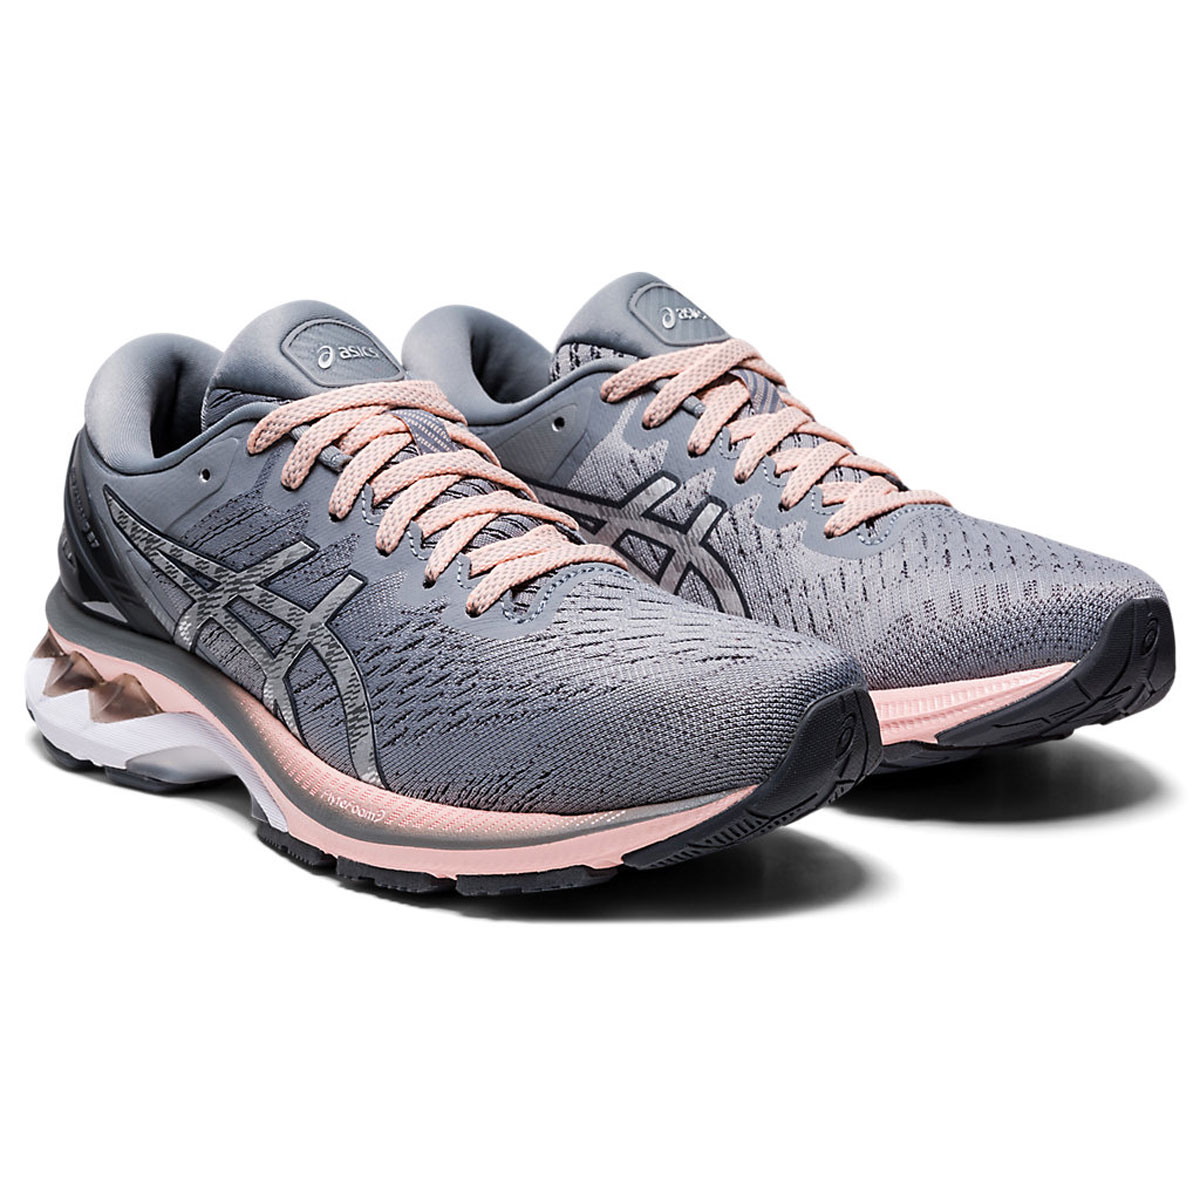 Women's Asics GEL-Kayano 27 Running Shoe - Color: Sheet Rock/Pure (Regular Width) - Size: 5, Sheet Rock/Pure, large, image 3